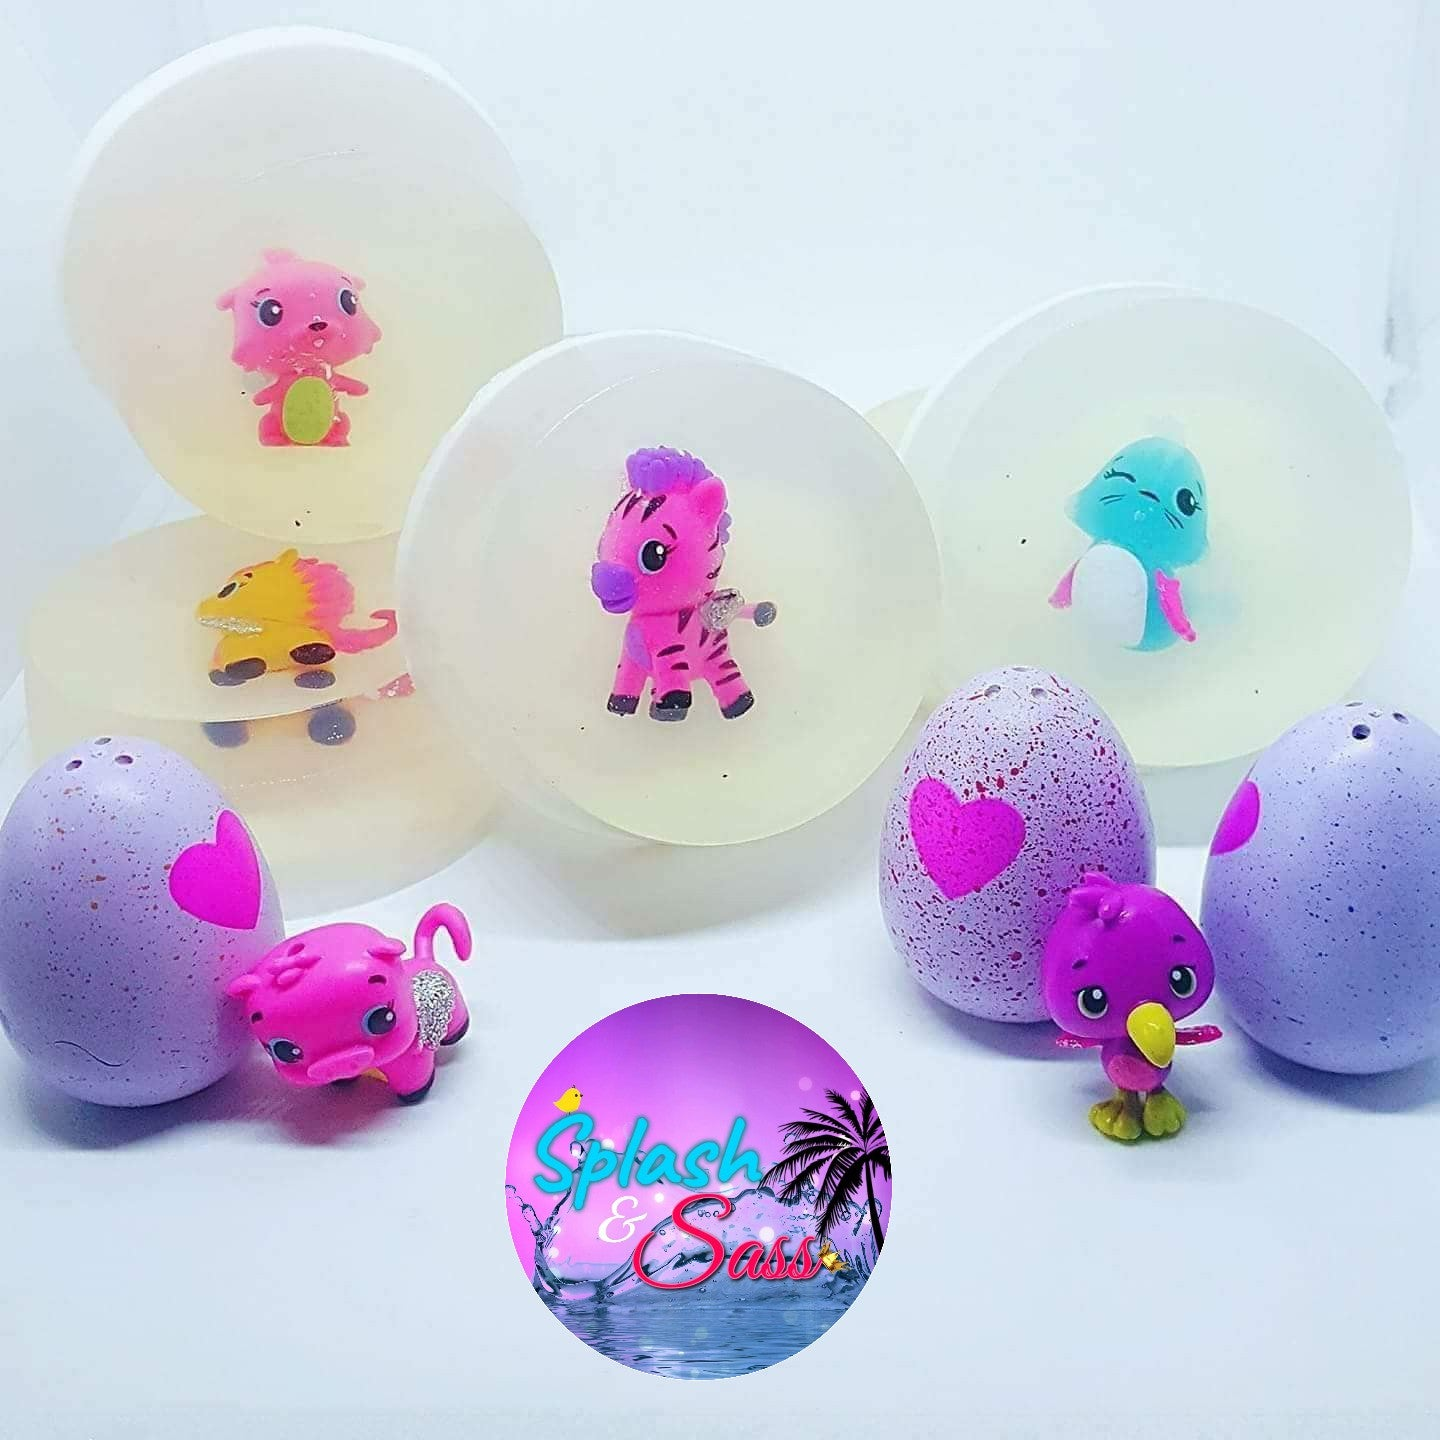 Hatch Toy Soaps - Hatchimal inspired - Splash-&-Sass